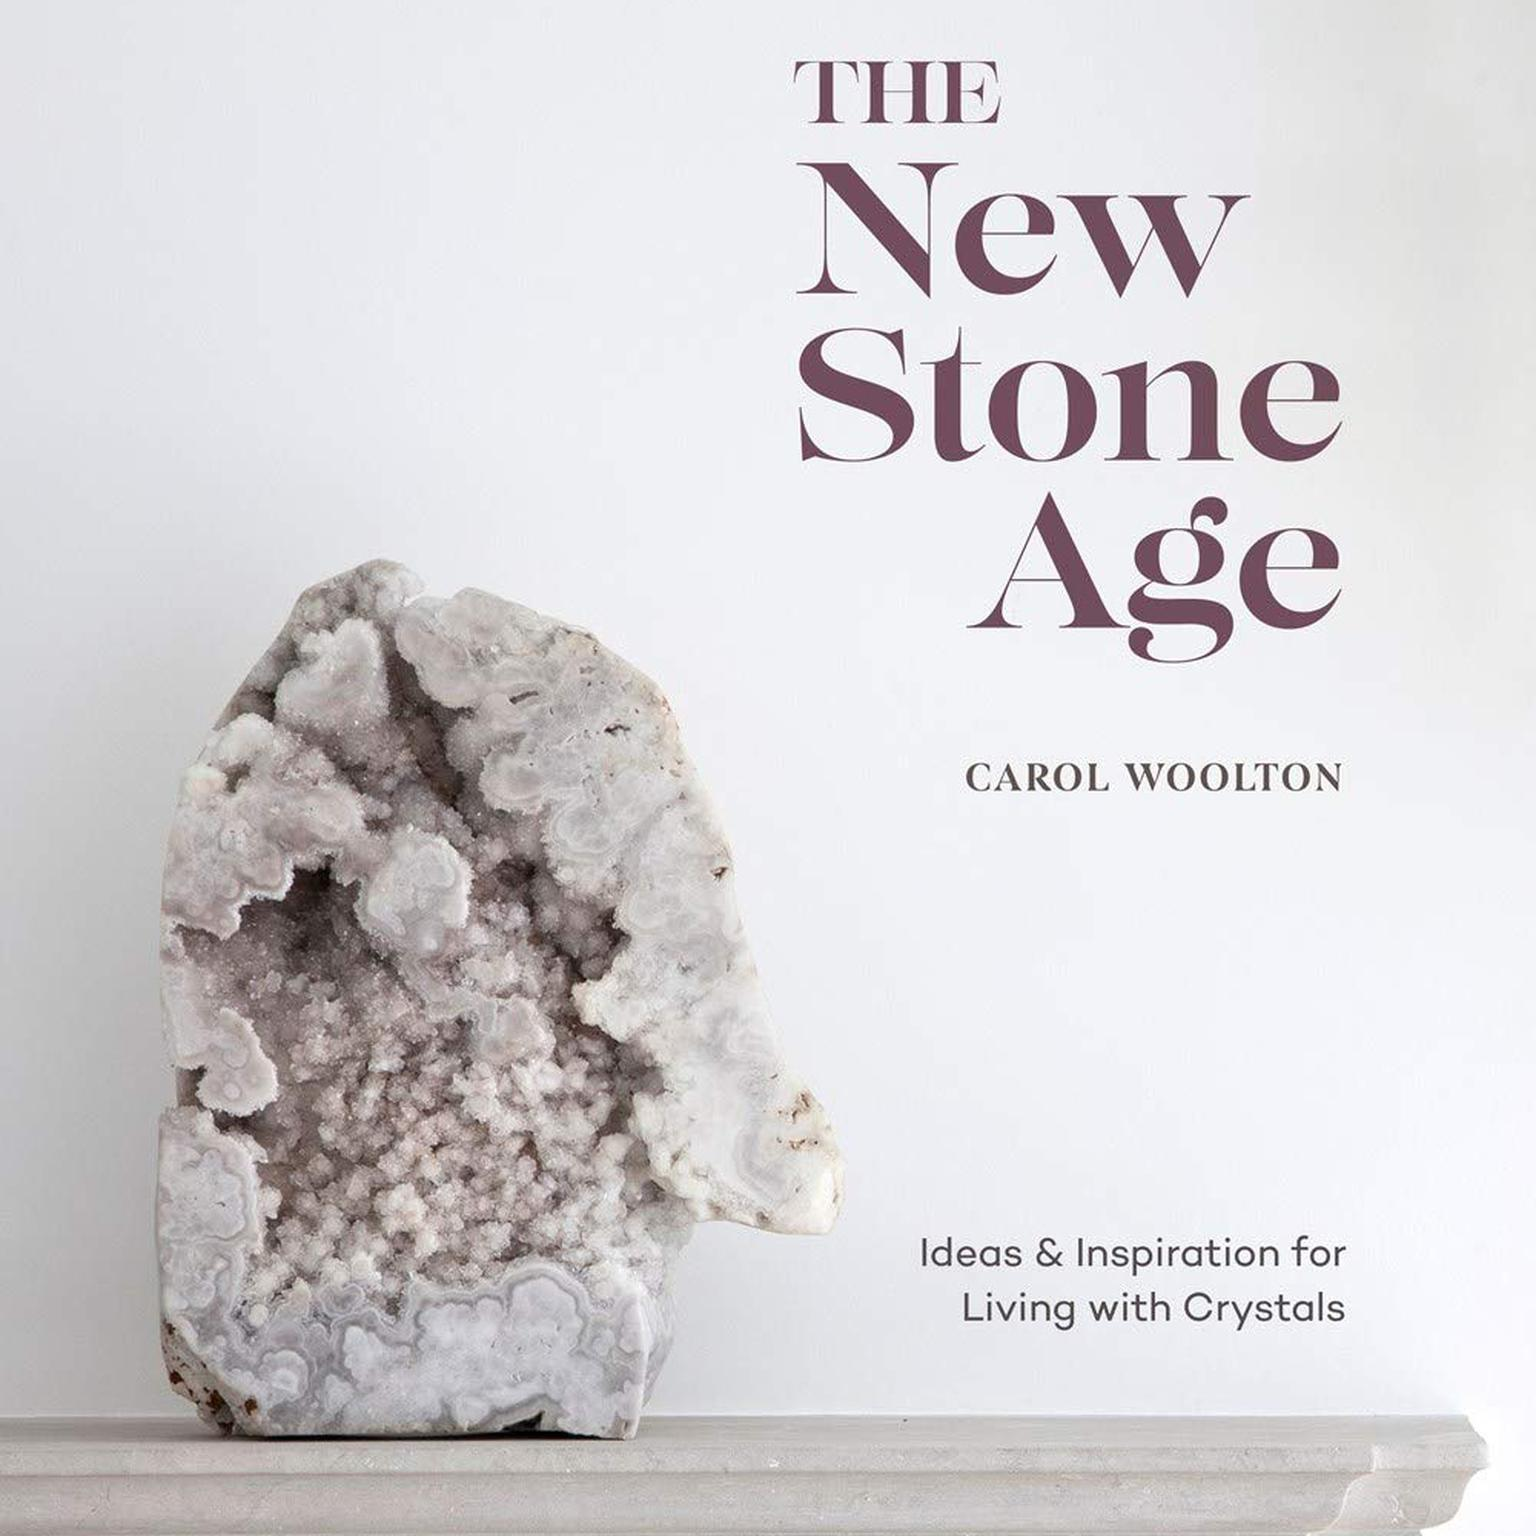 The New Stone Age by Carol Woolton